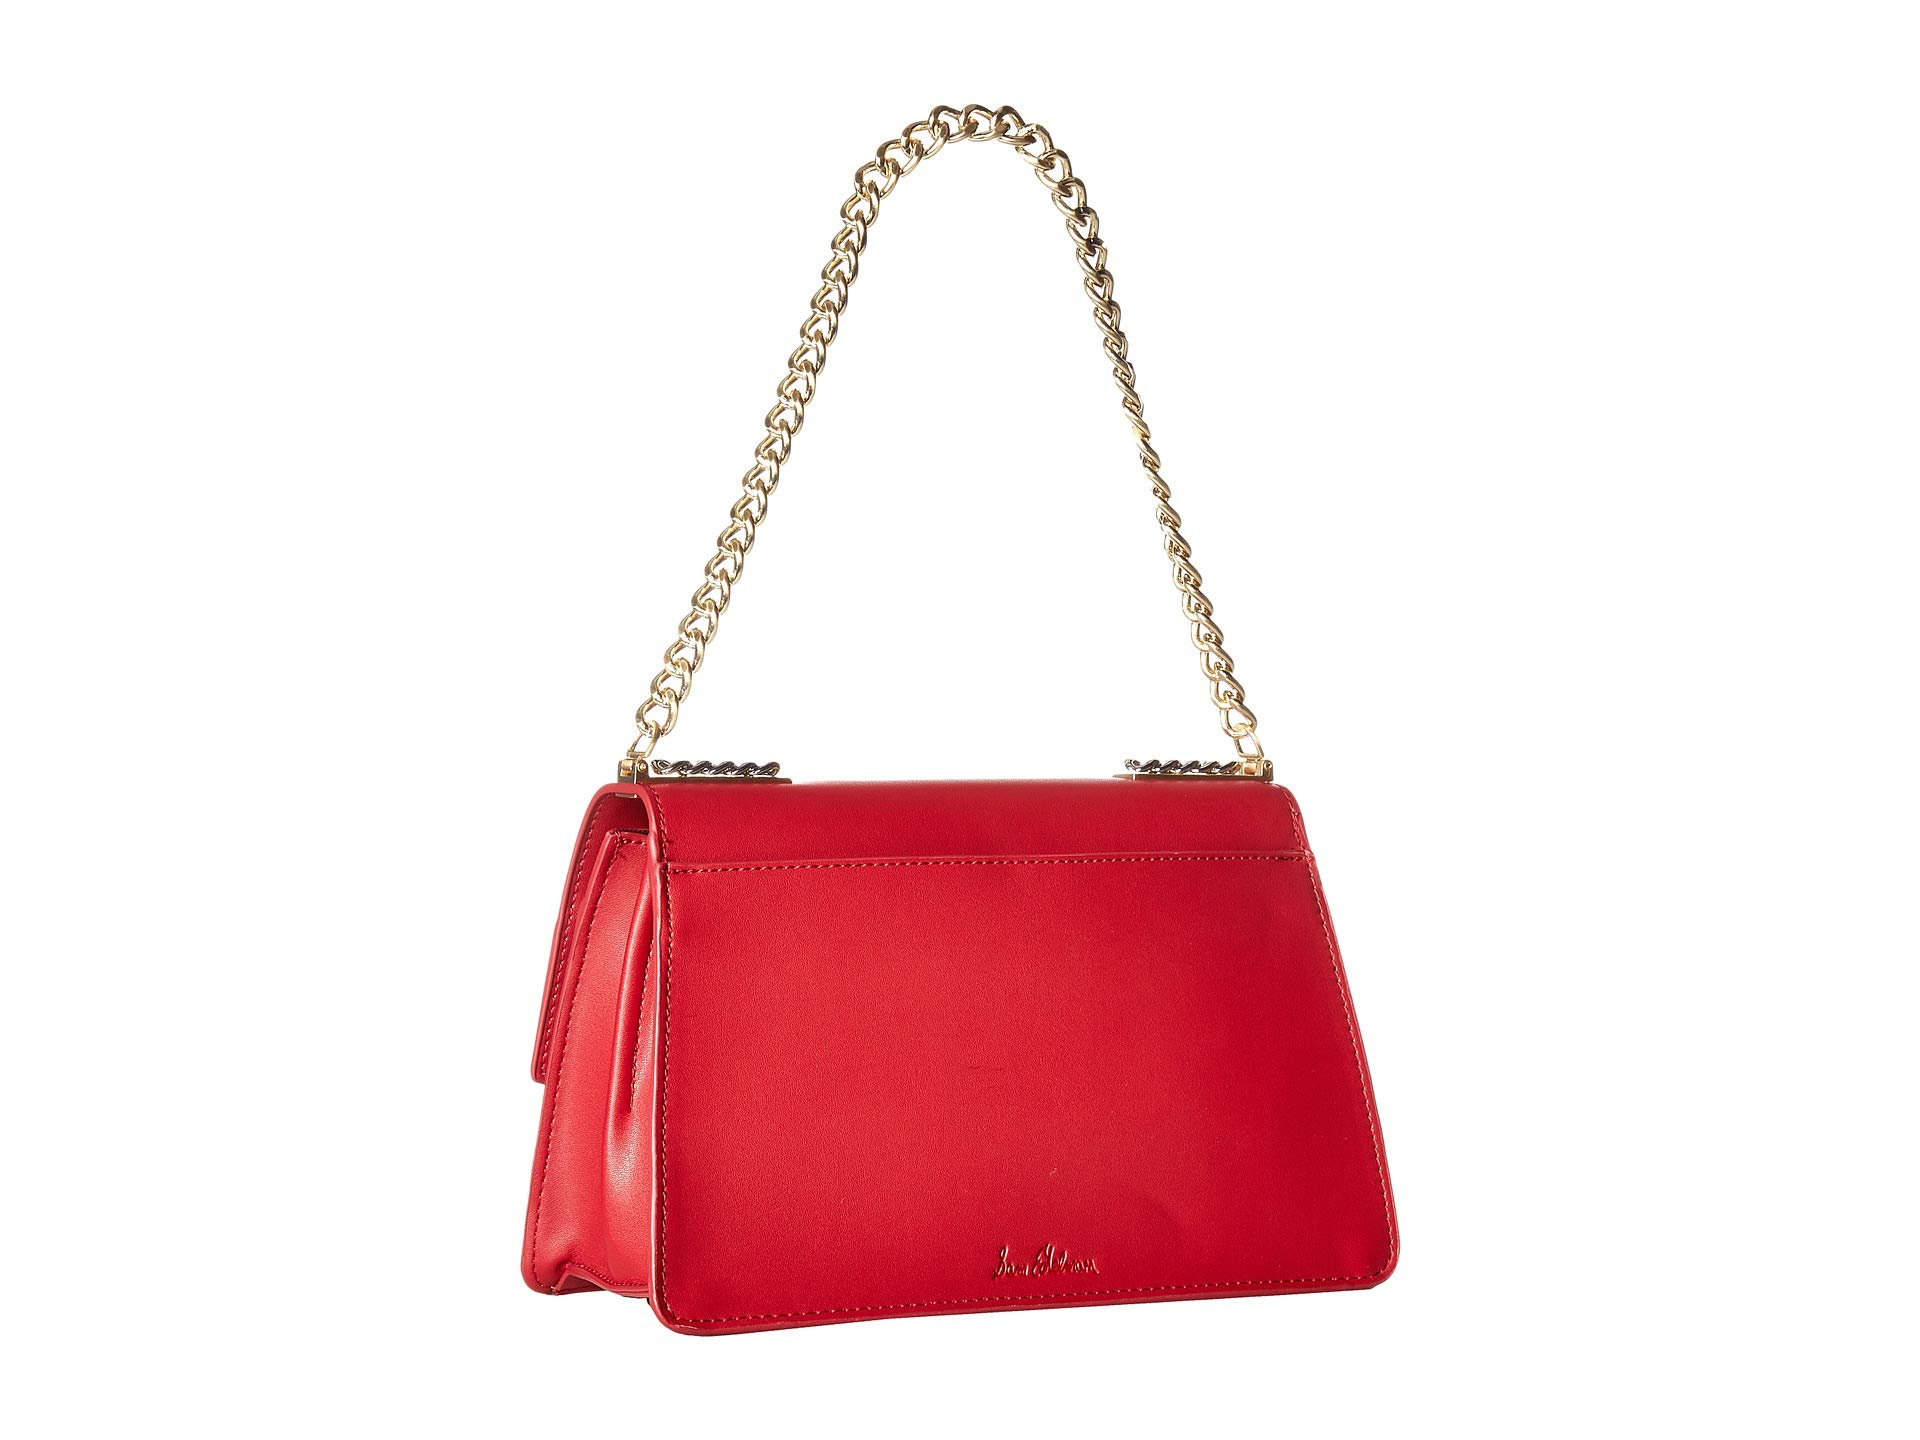 Bag Red Devon Edelman Shoulder Sam 8FqvwxxtI